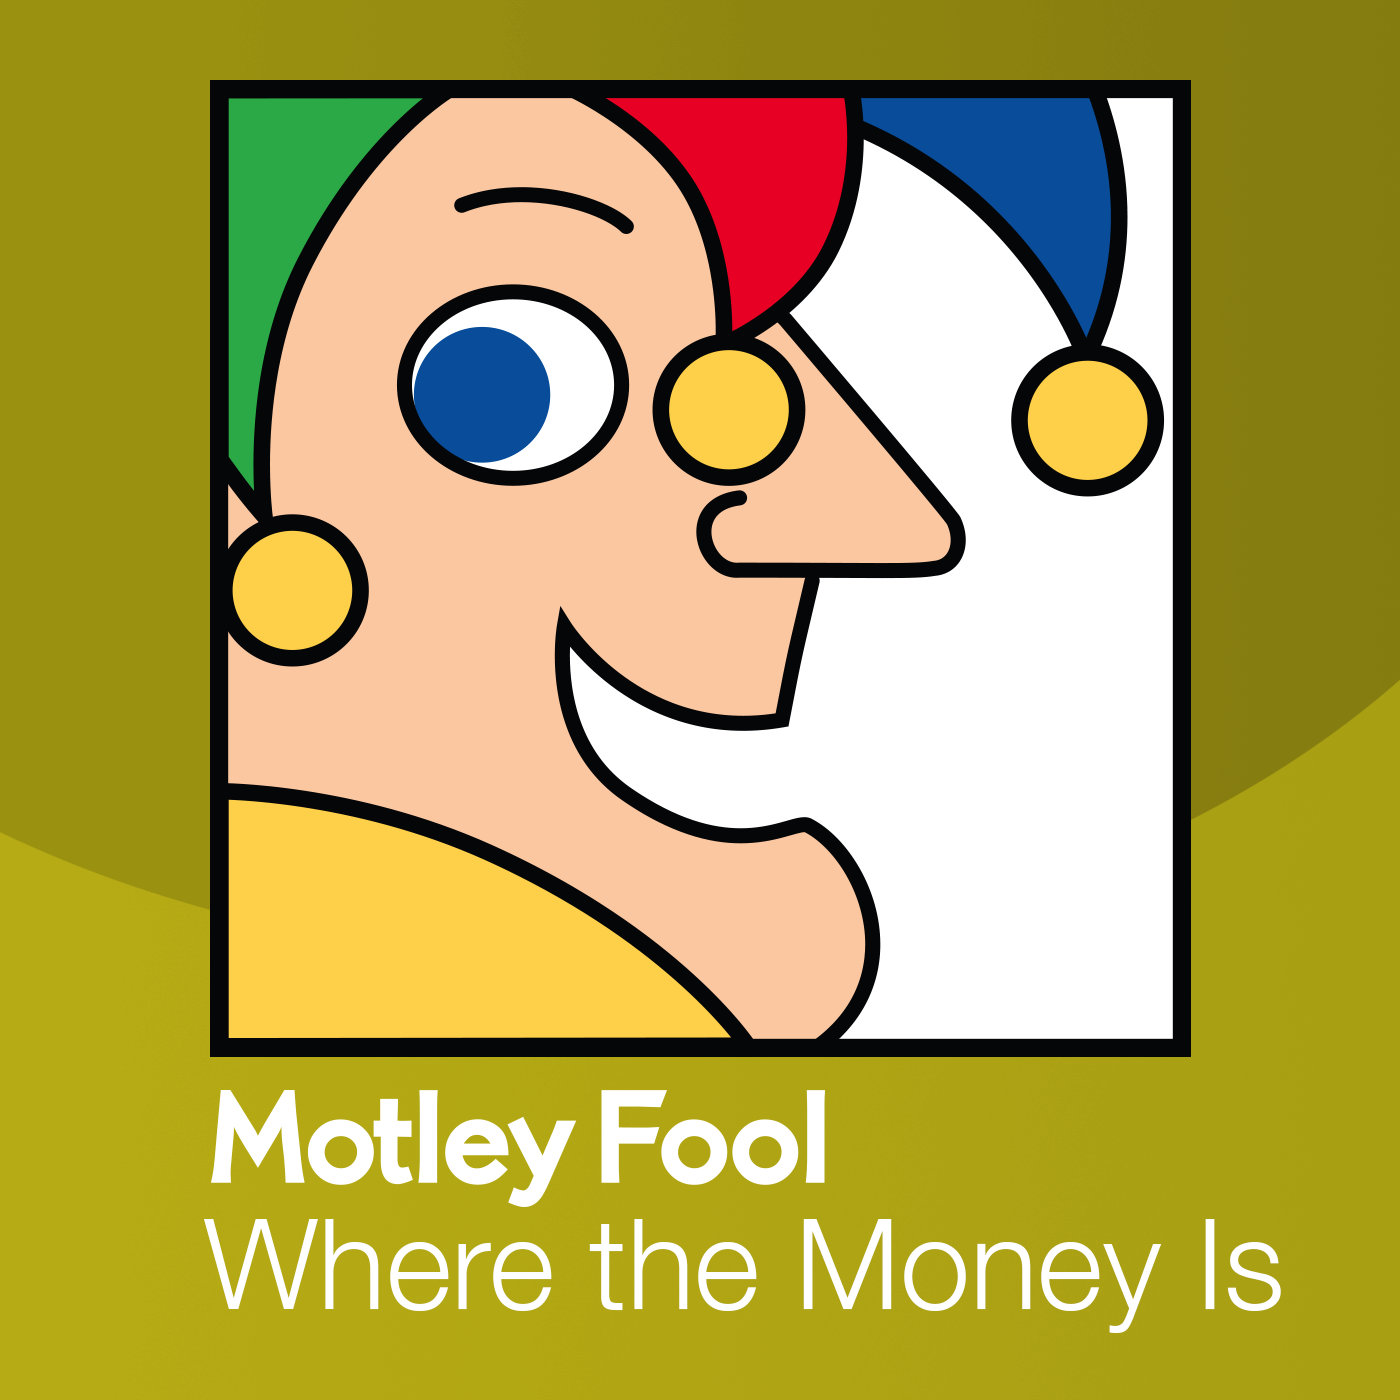 Where the Money Is 02.10.14